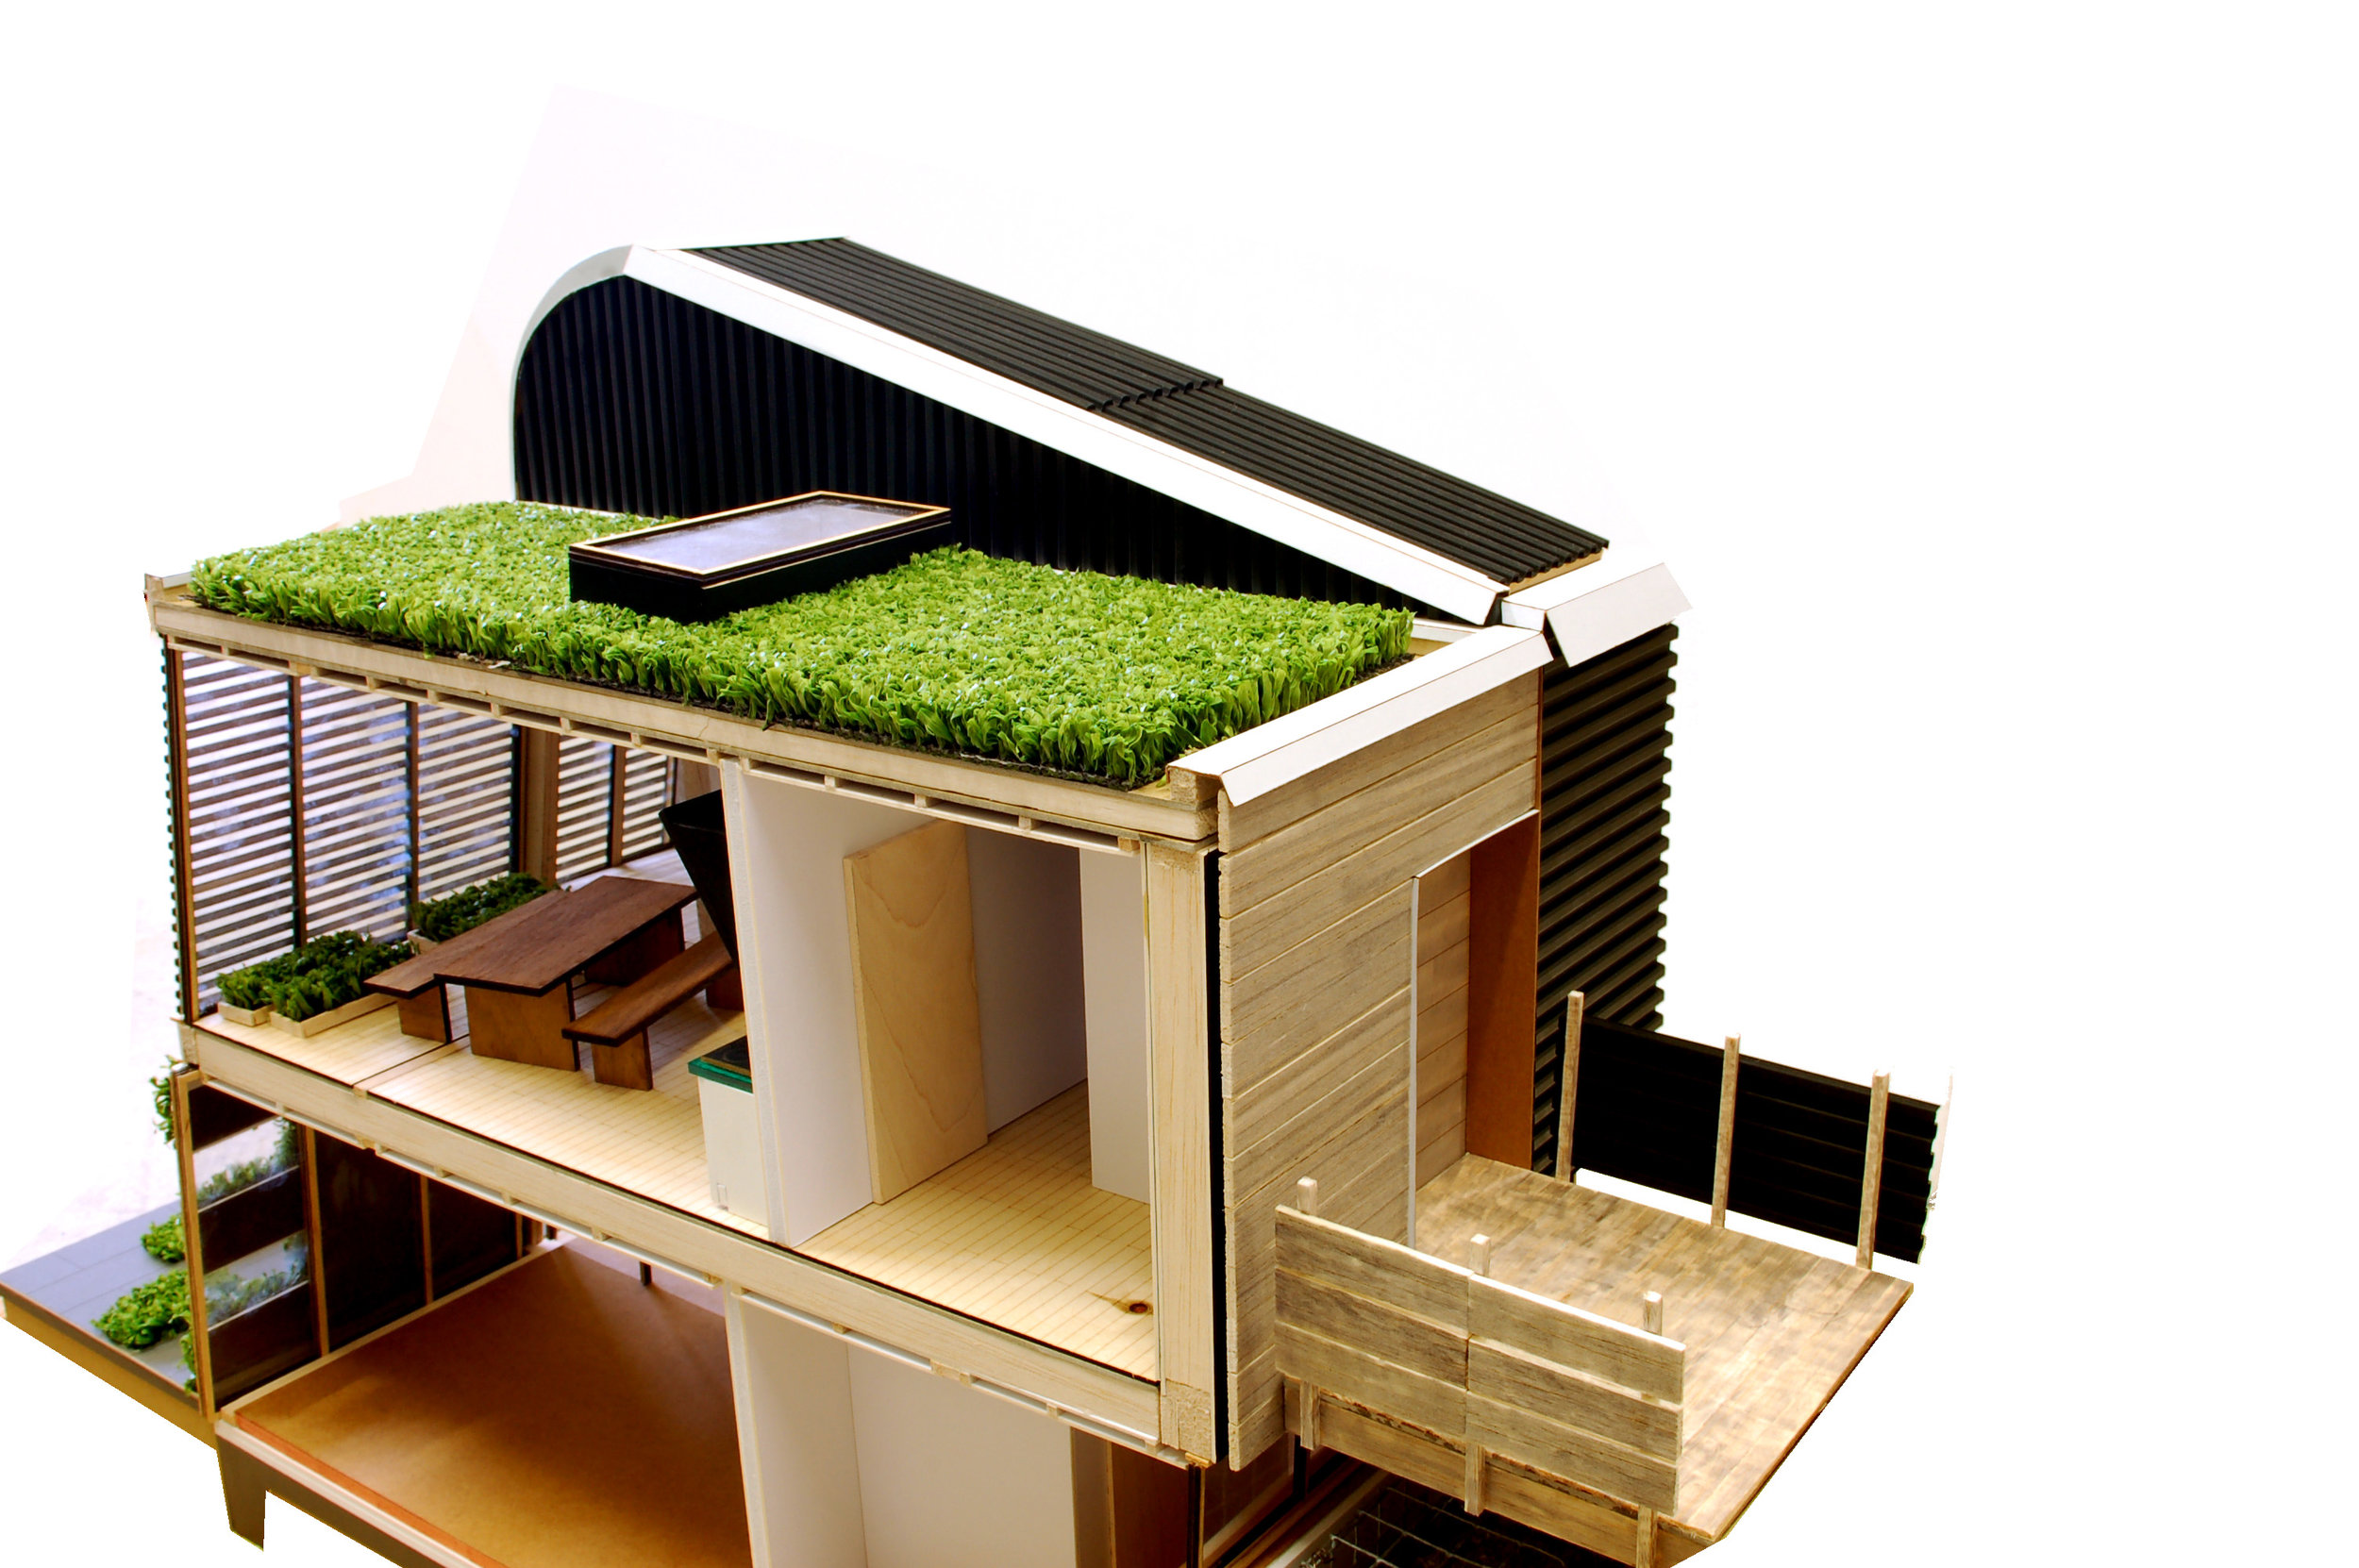 Organic Living_10_Type A_Physical Model 1-20 Detailed Section.jpg